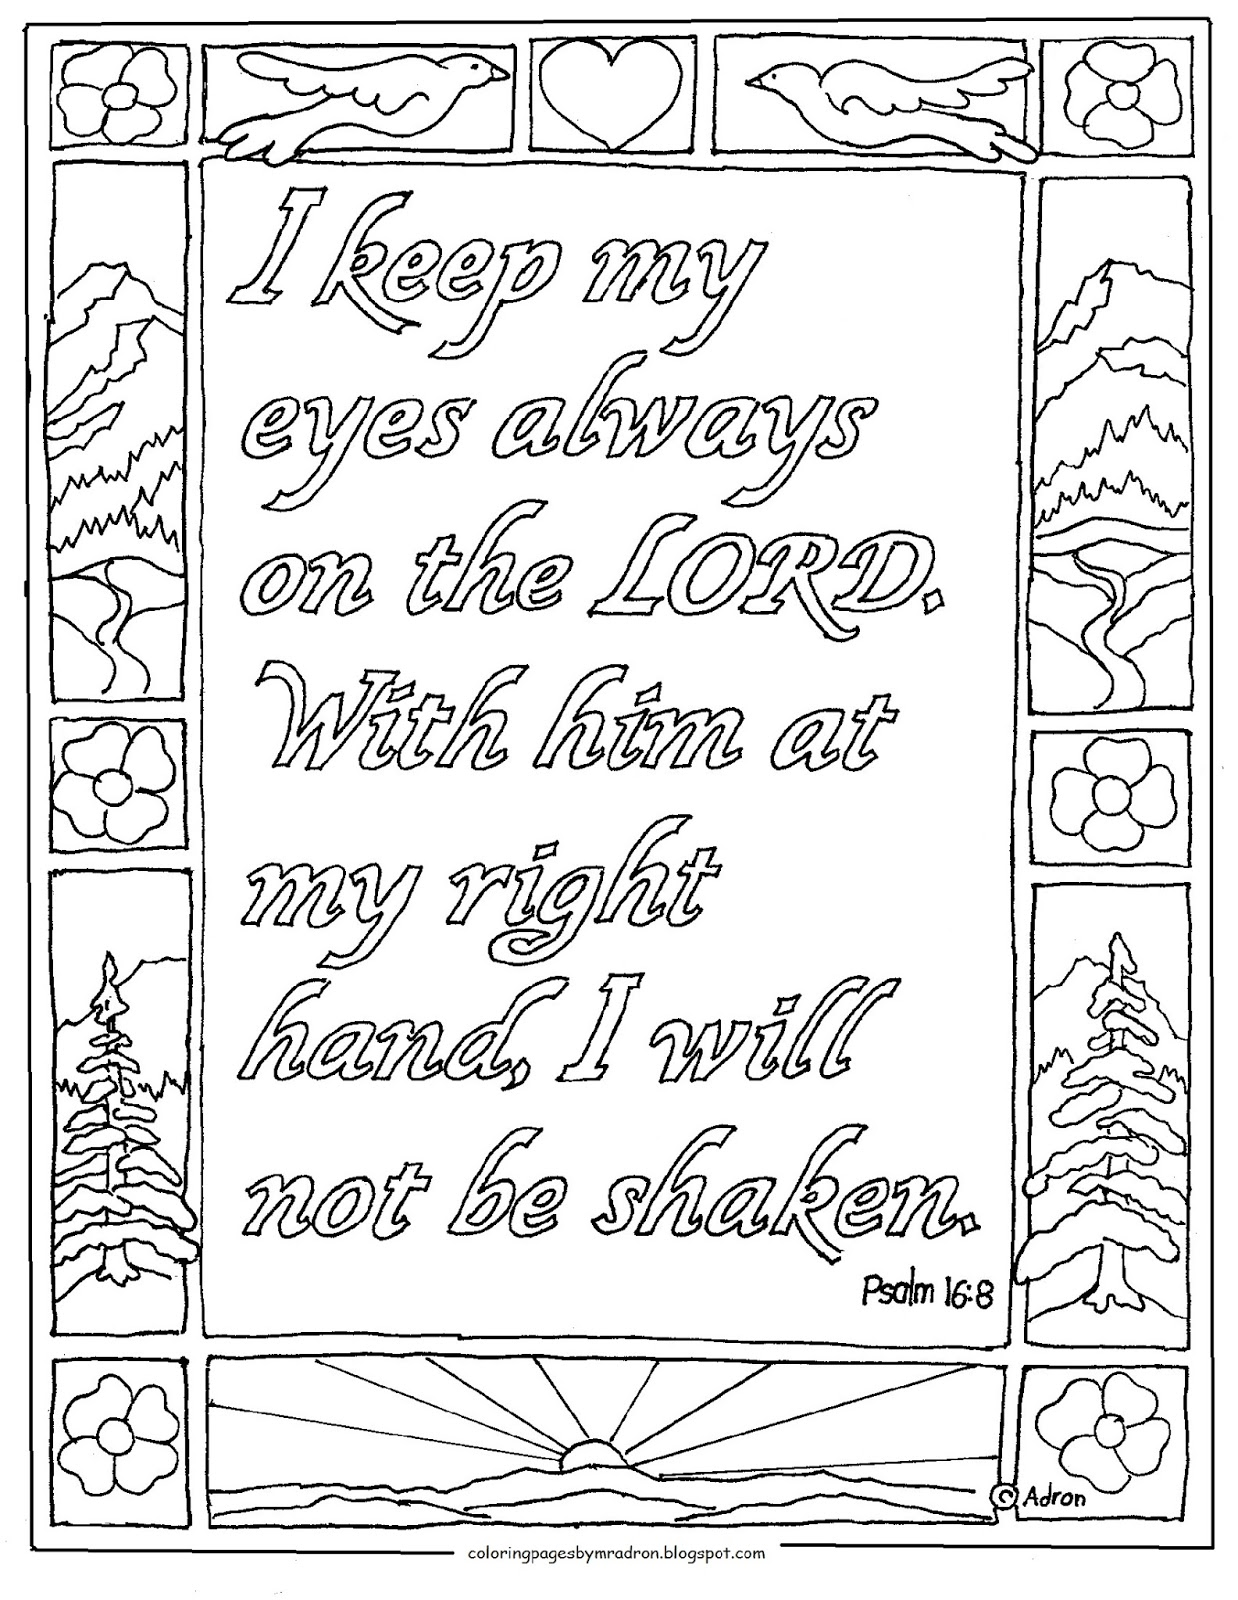 psalms coloring pages psalms coloring pages 85x11 illustrated children39s coloring psalms pages 1 1